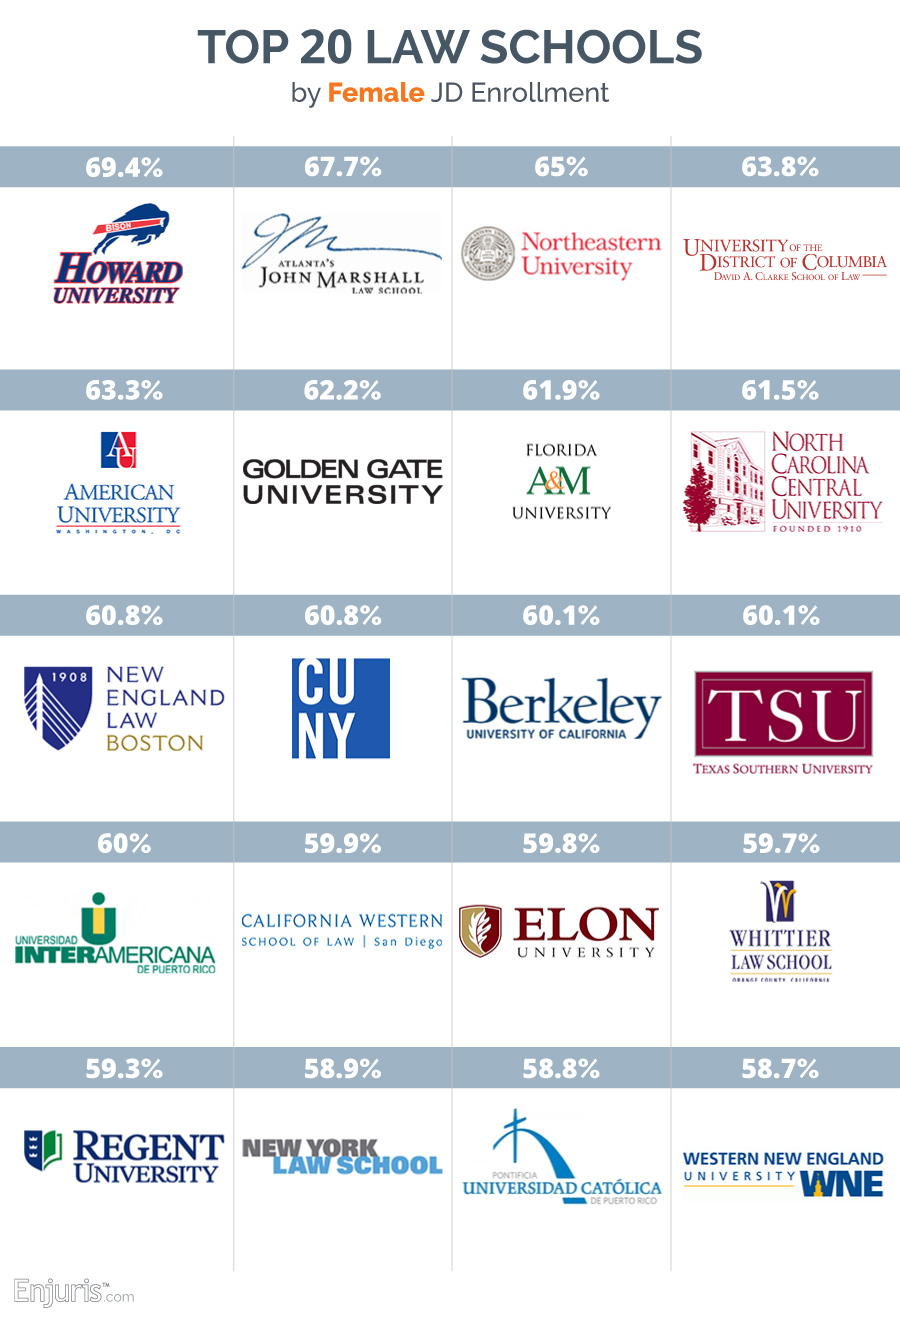 Top 20 law schools by female J.D. enrollment